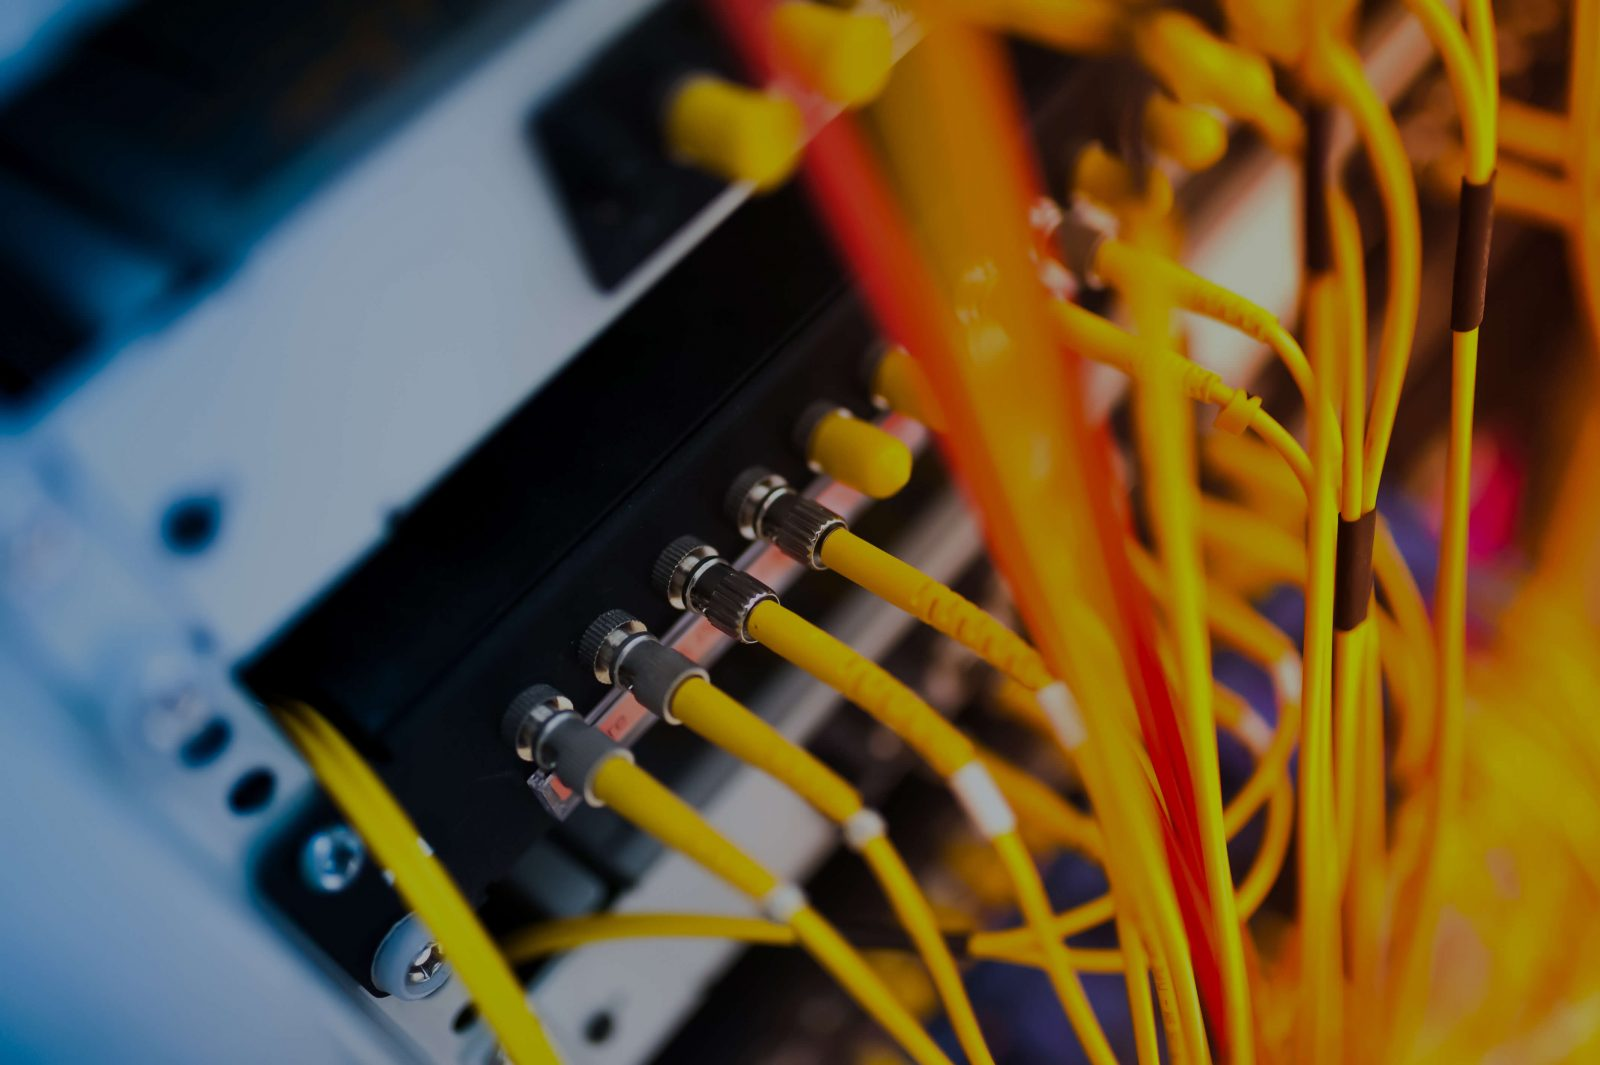 Complicated yellow server cables